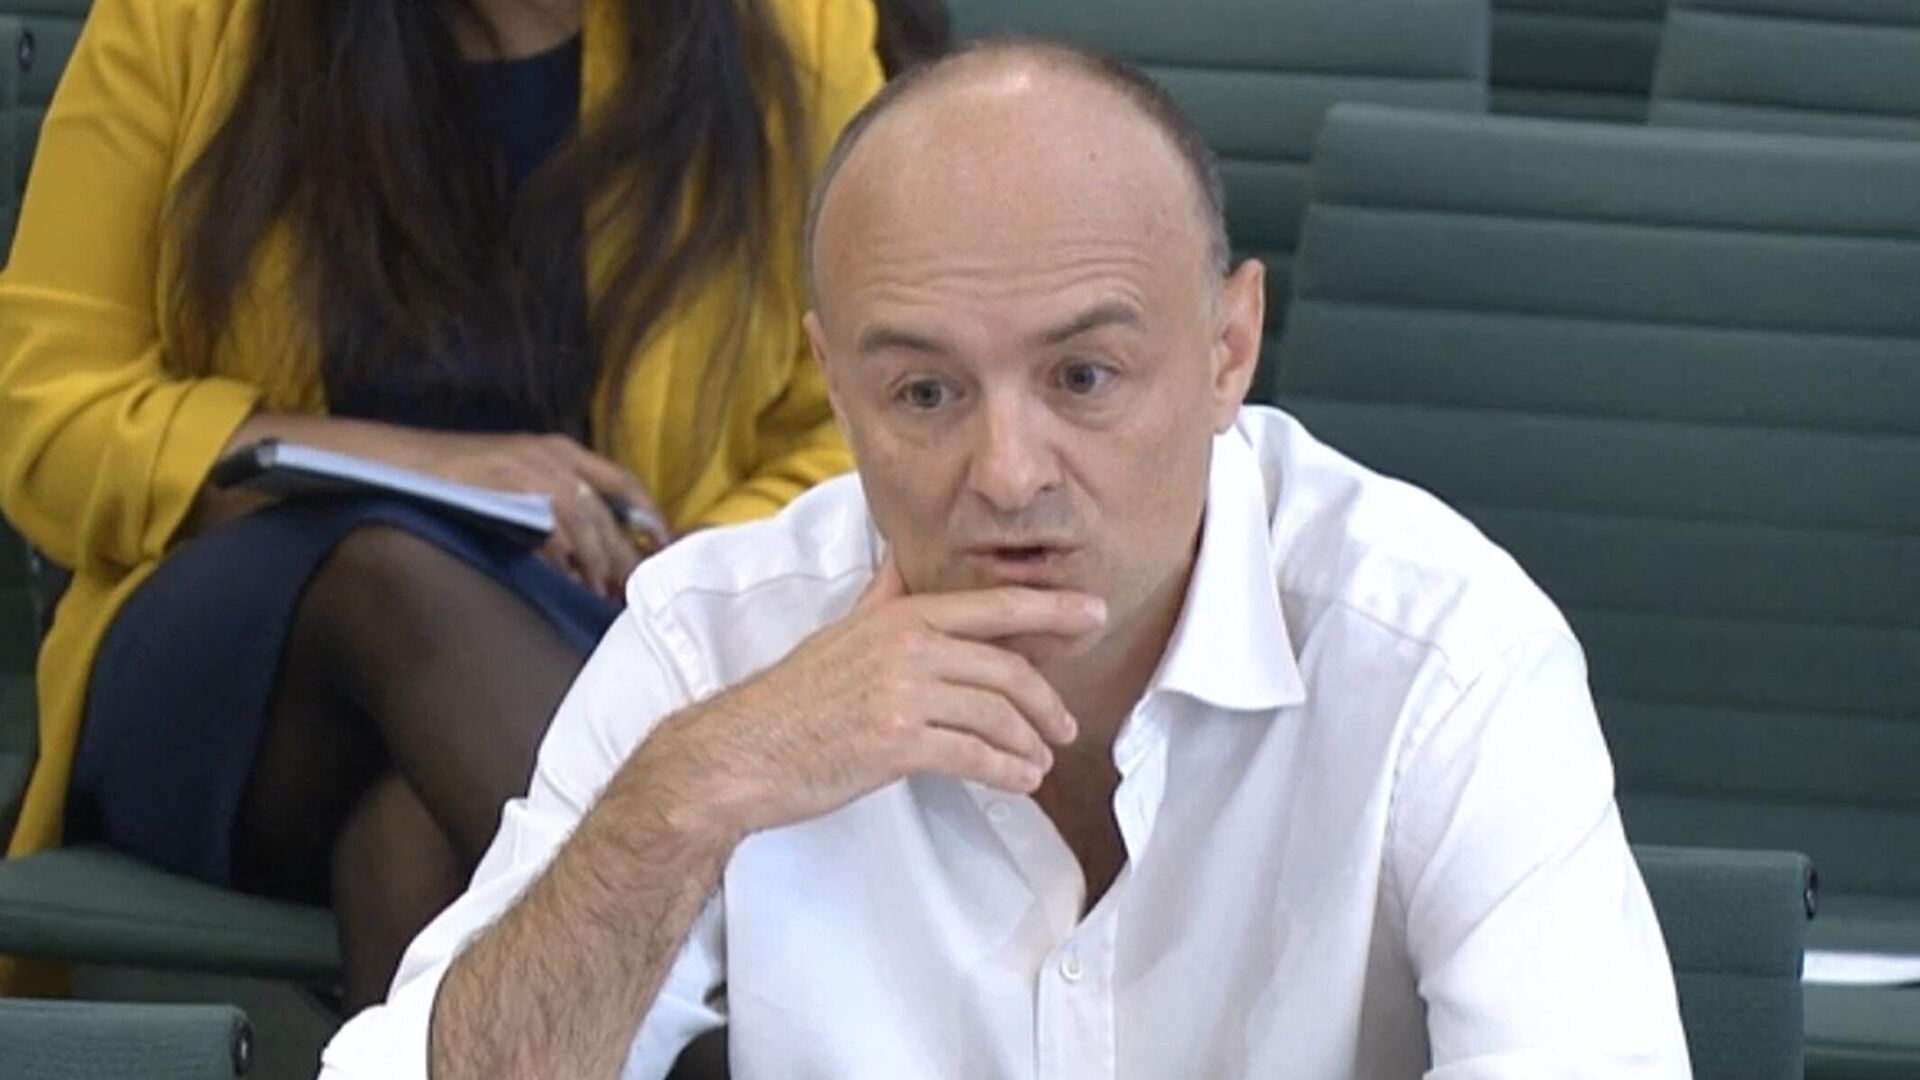 A video grab from footage broadcast by the UK Parliament's Parliamentary Recording Unit (PRU) shows former number 10 special advisor Dominic Cummings speaking at a committee hearing in Portcullis house in London on May 26, 2021 - Sputnik International, 1920, 11.09.2021